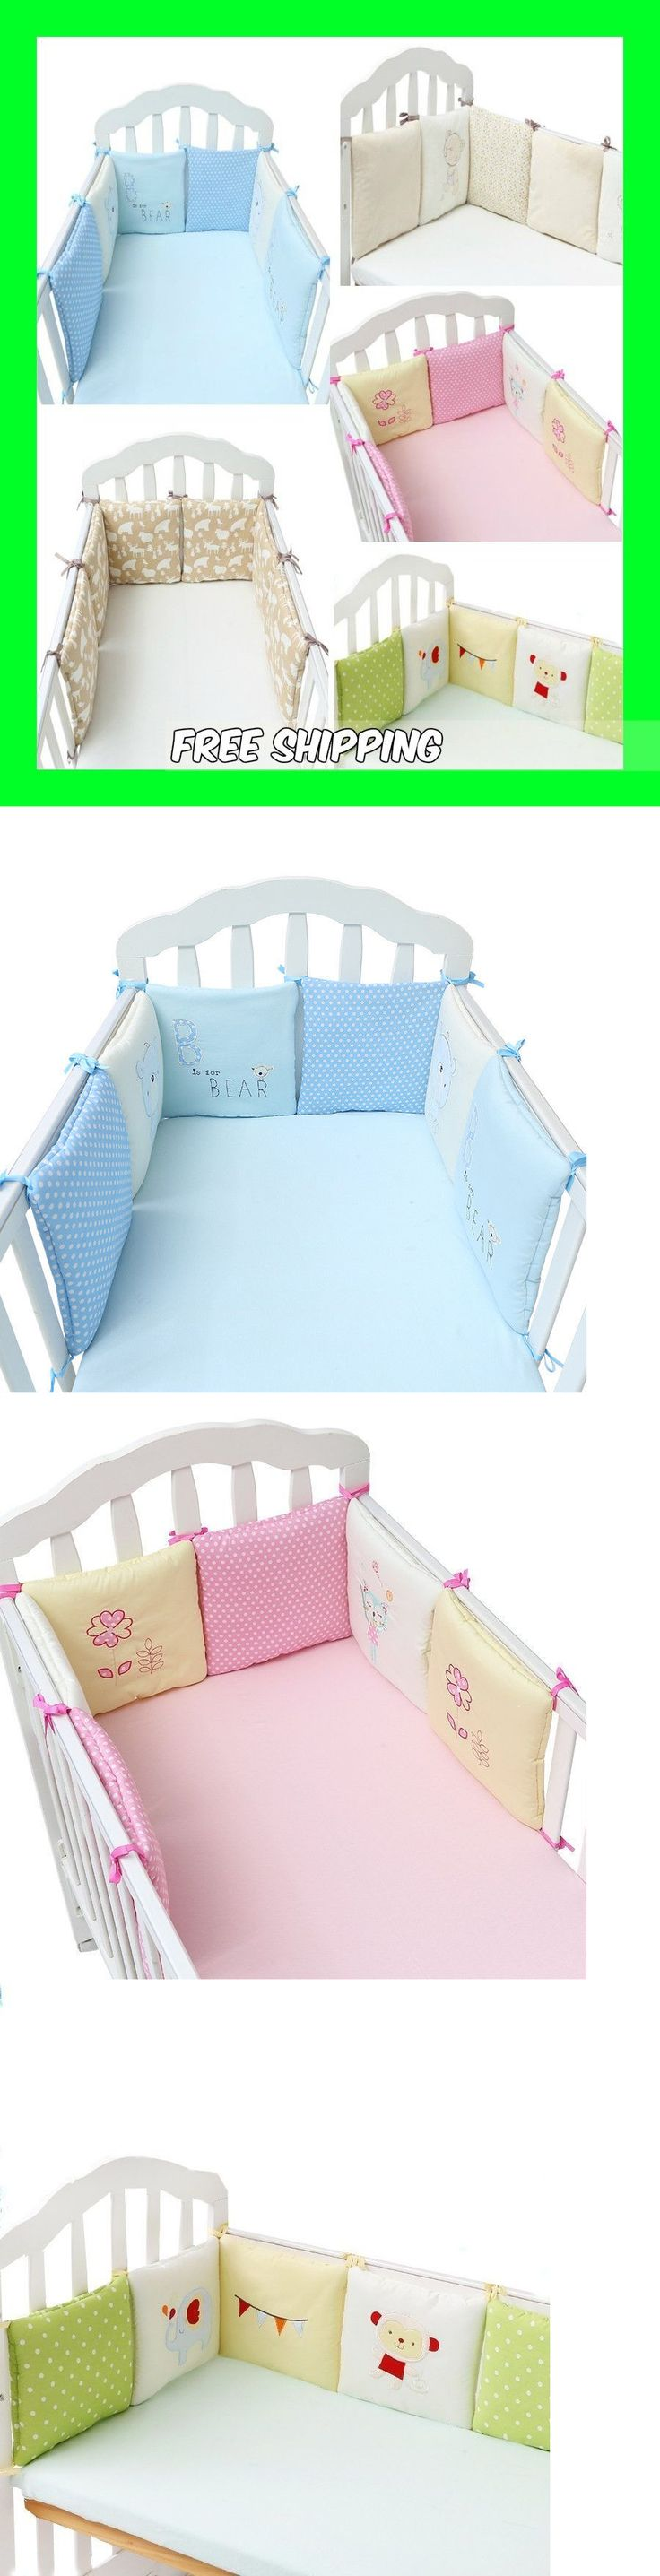 159 best crib mattresses 117035 images on pinterest